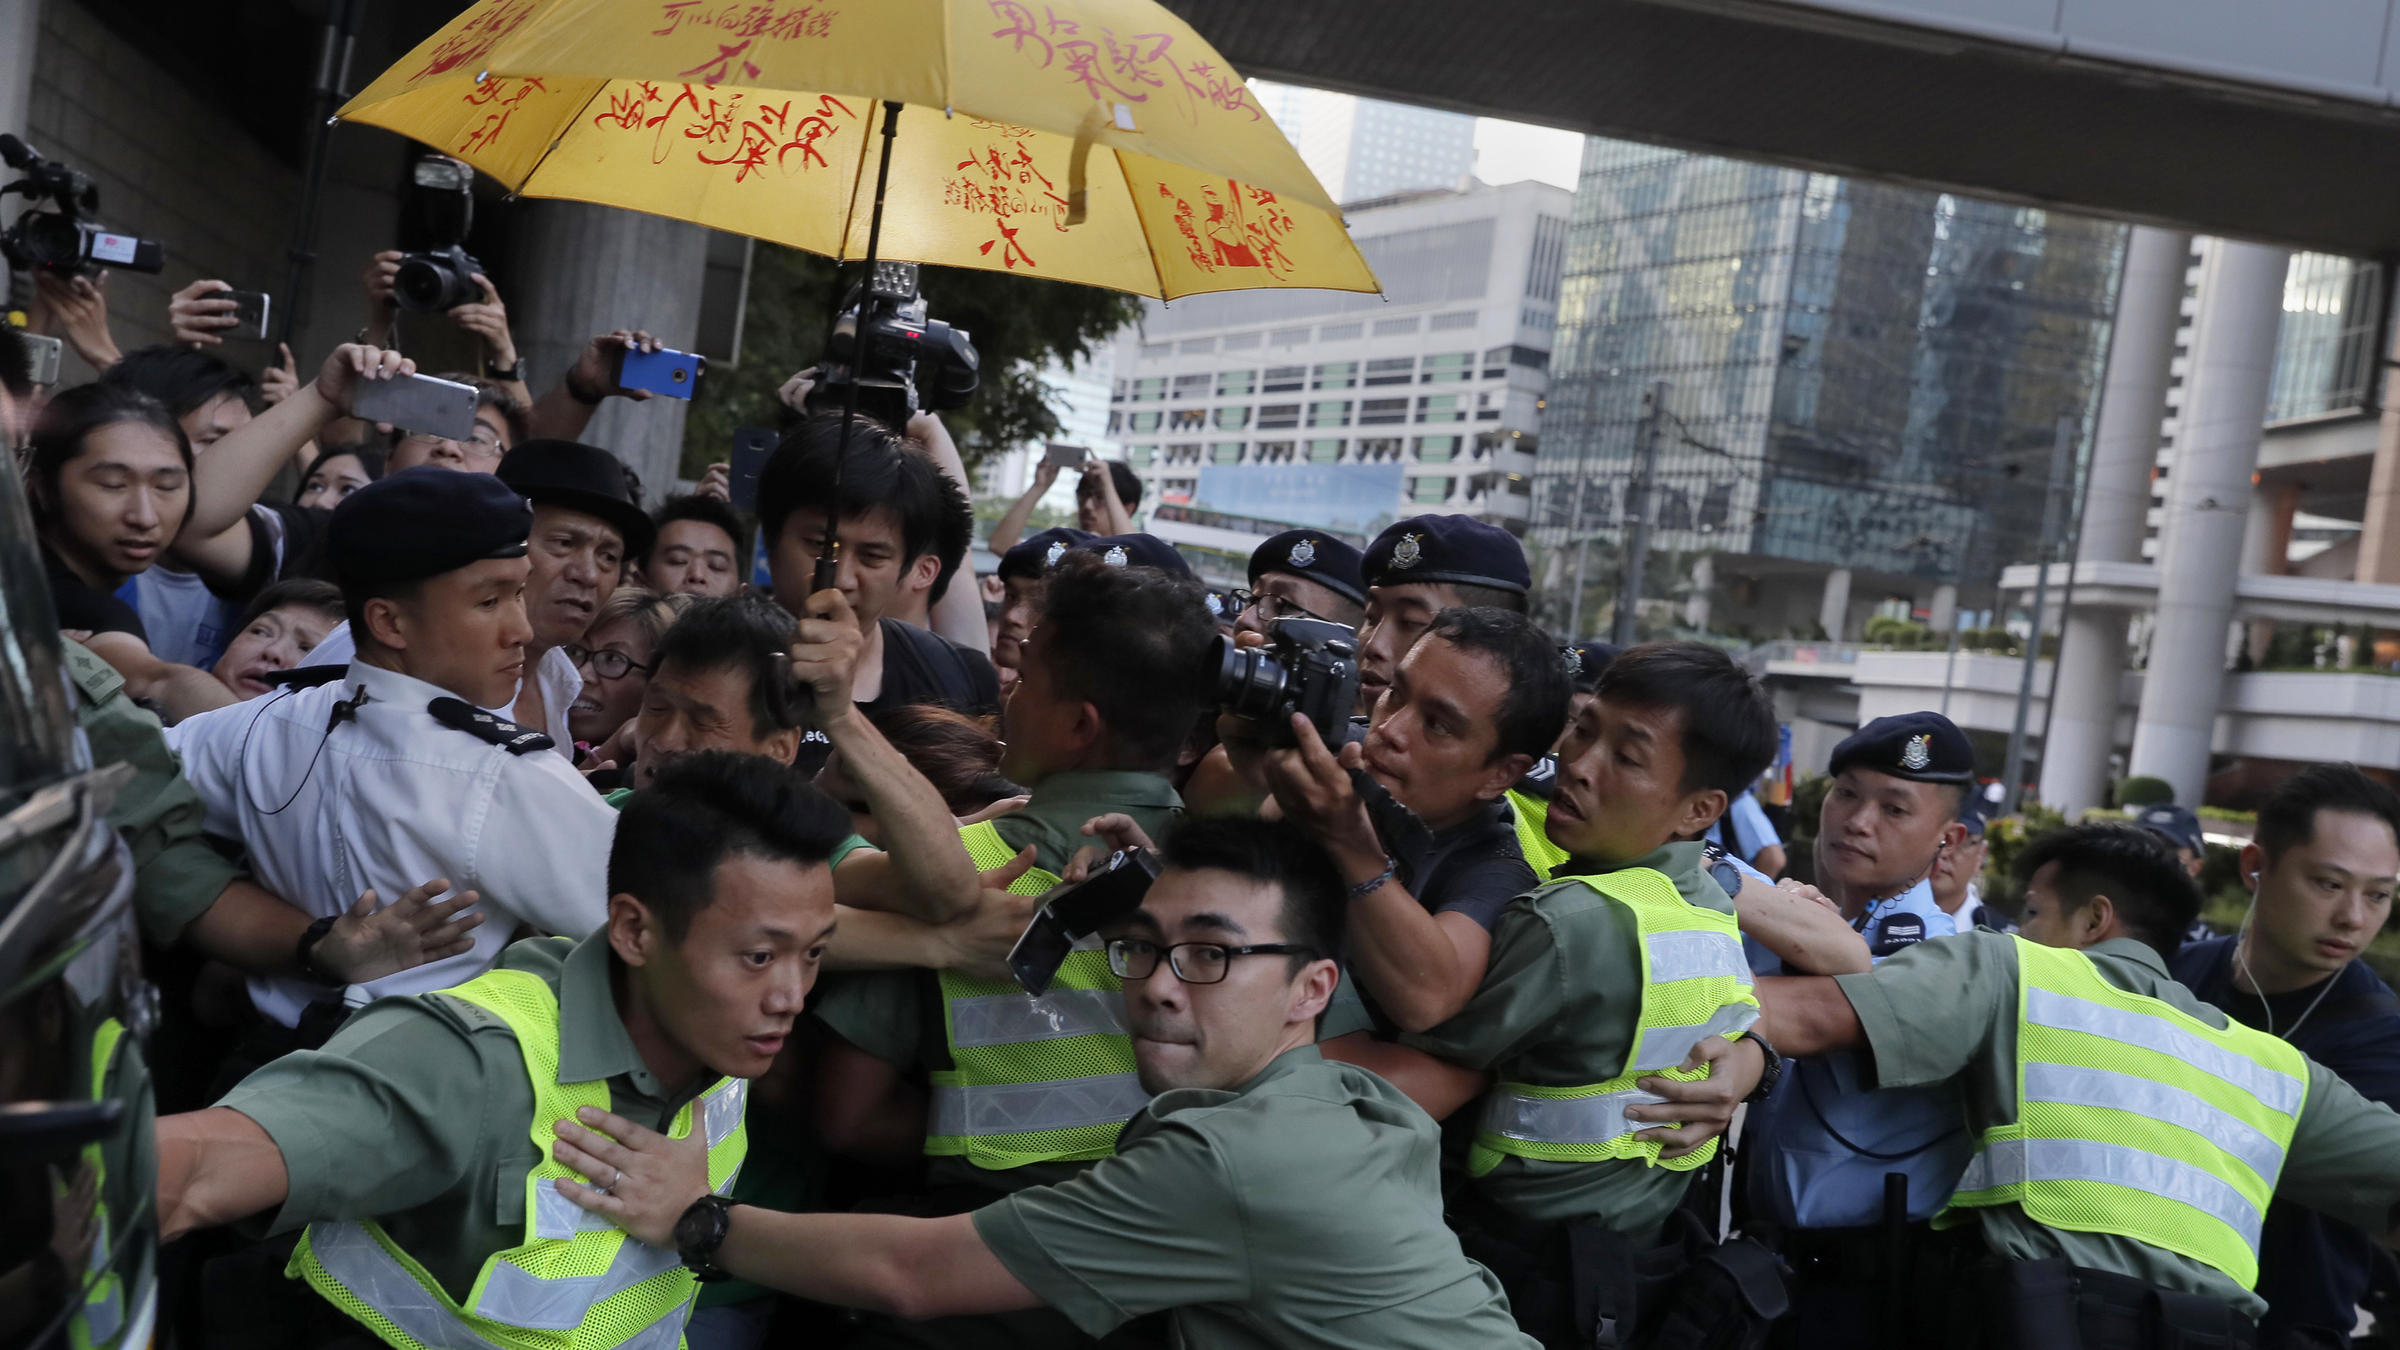 Critics cry foul as HK democracy leaders jailed